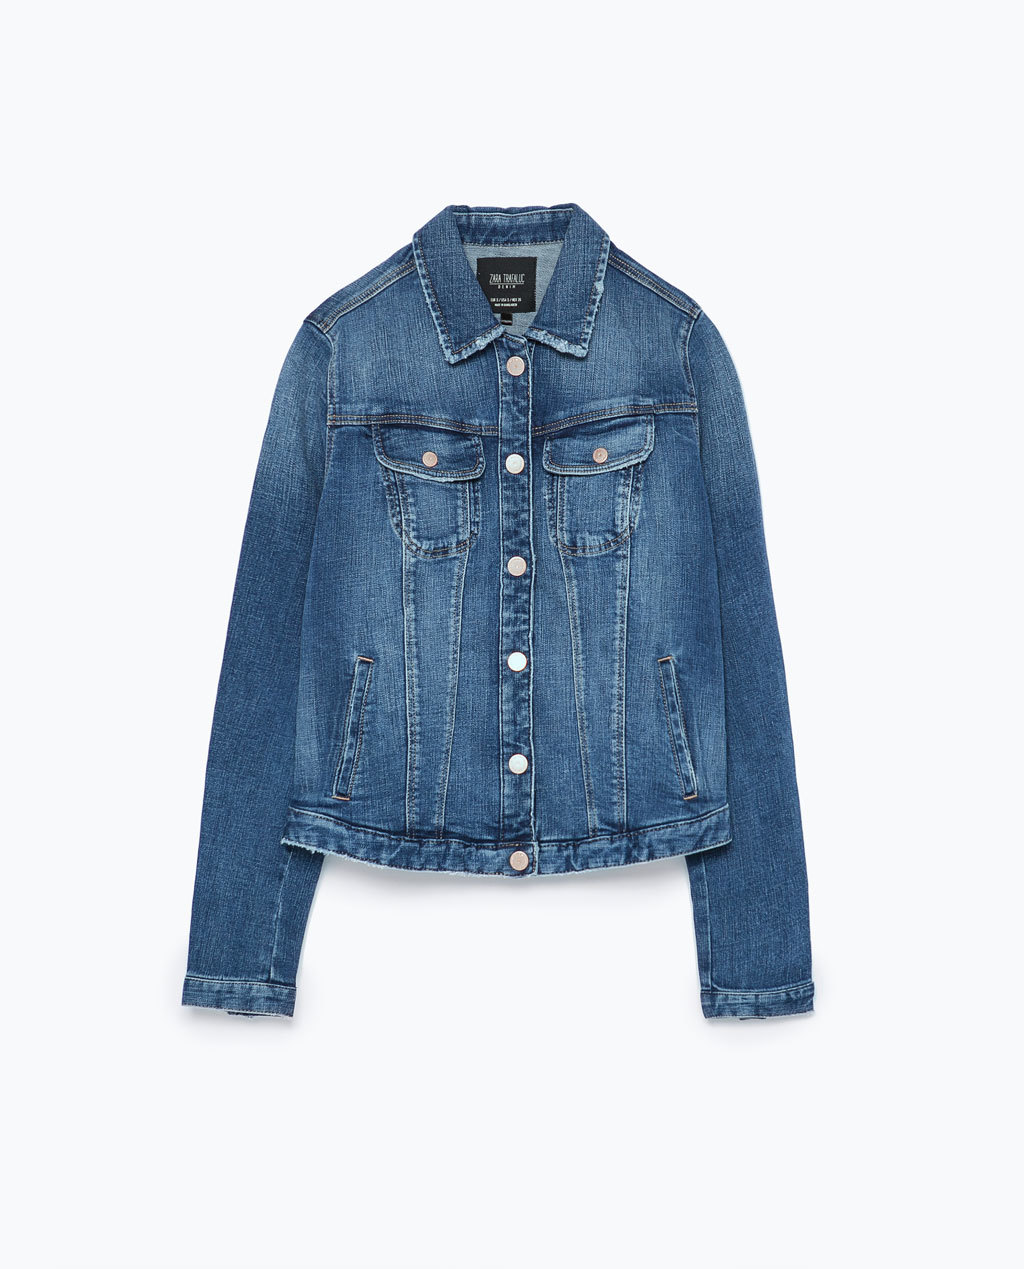 Basic Denim Jacket - pattern: plain; style: denim; predominant colour: denim; occasions: casual, creative work; length: standard; fit: straight cut (boxy); fibres: cotton - mix; collar: shirt collar/peter pan/zip with opening; sleeve length: long sleeve; sleeve style: standard; texture group: denim; collar break: high/illusion of break when open; pattern type: fabric; season: s/s 2015; wardrobe: basic